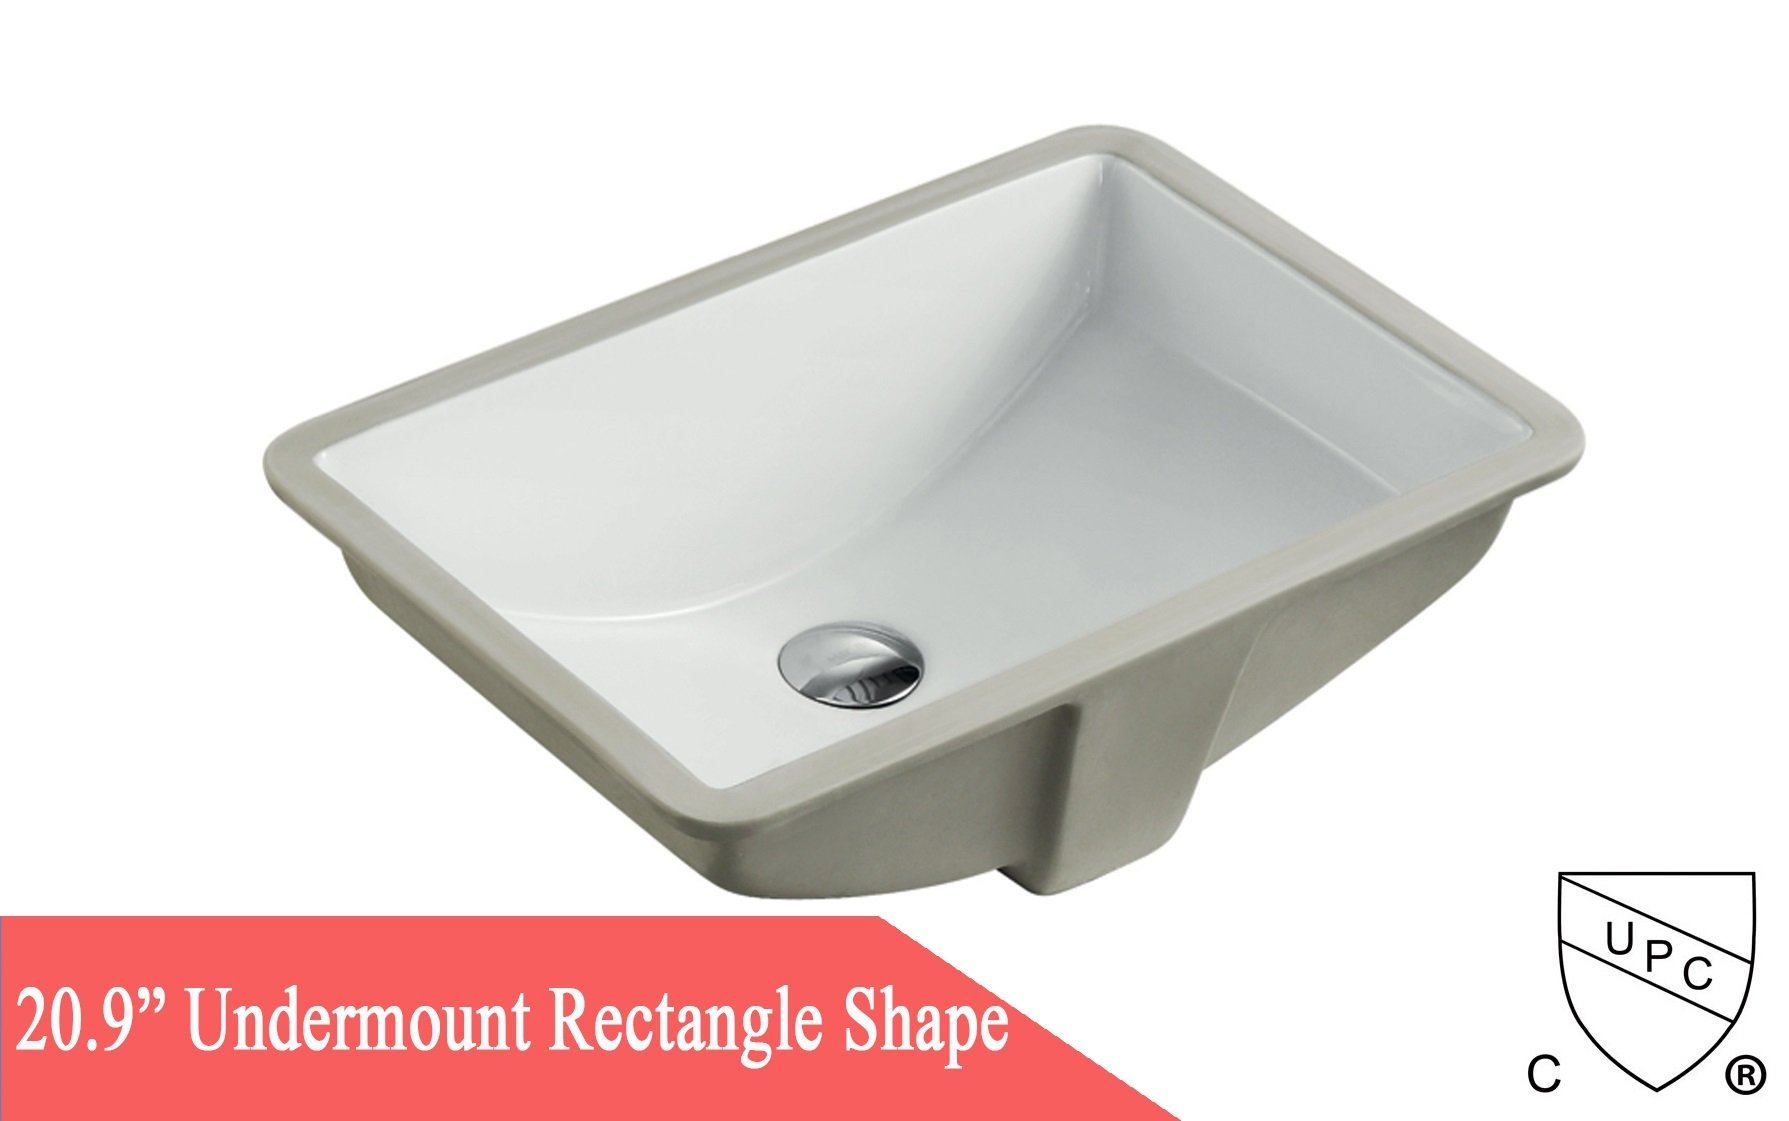 20.9 Inch Rectrangle Undermount Vitreous Ceramic Lavatory Vanity Bathroom Sink Pure White by Contempo Living Inc